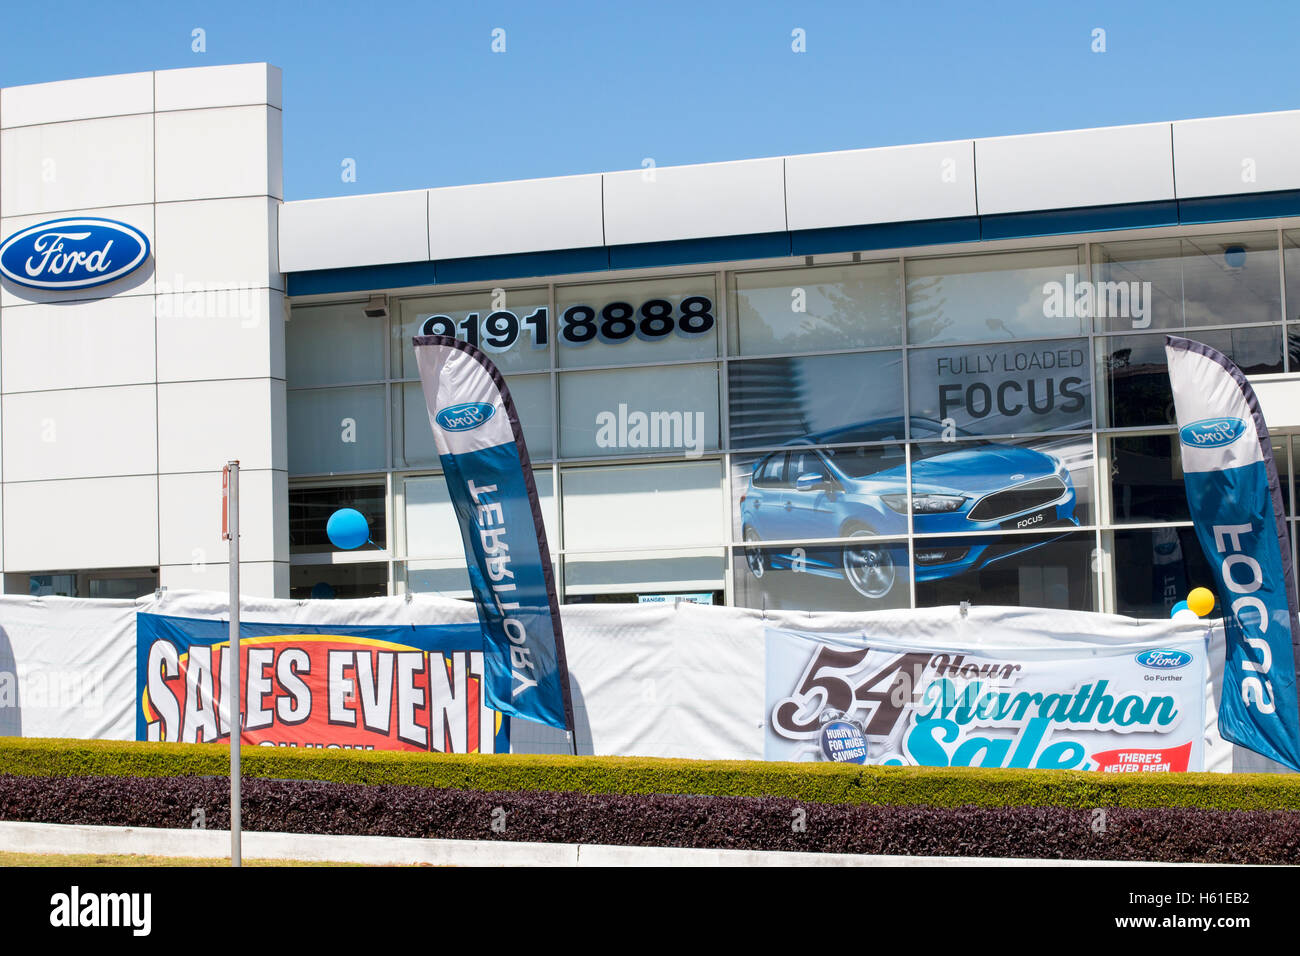 Used Car Sales Australia Stock Photos & Used Car Sales Australia ...